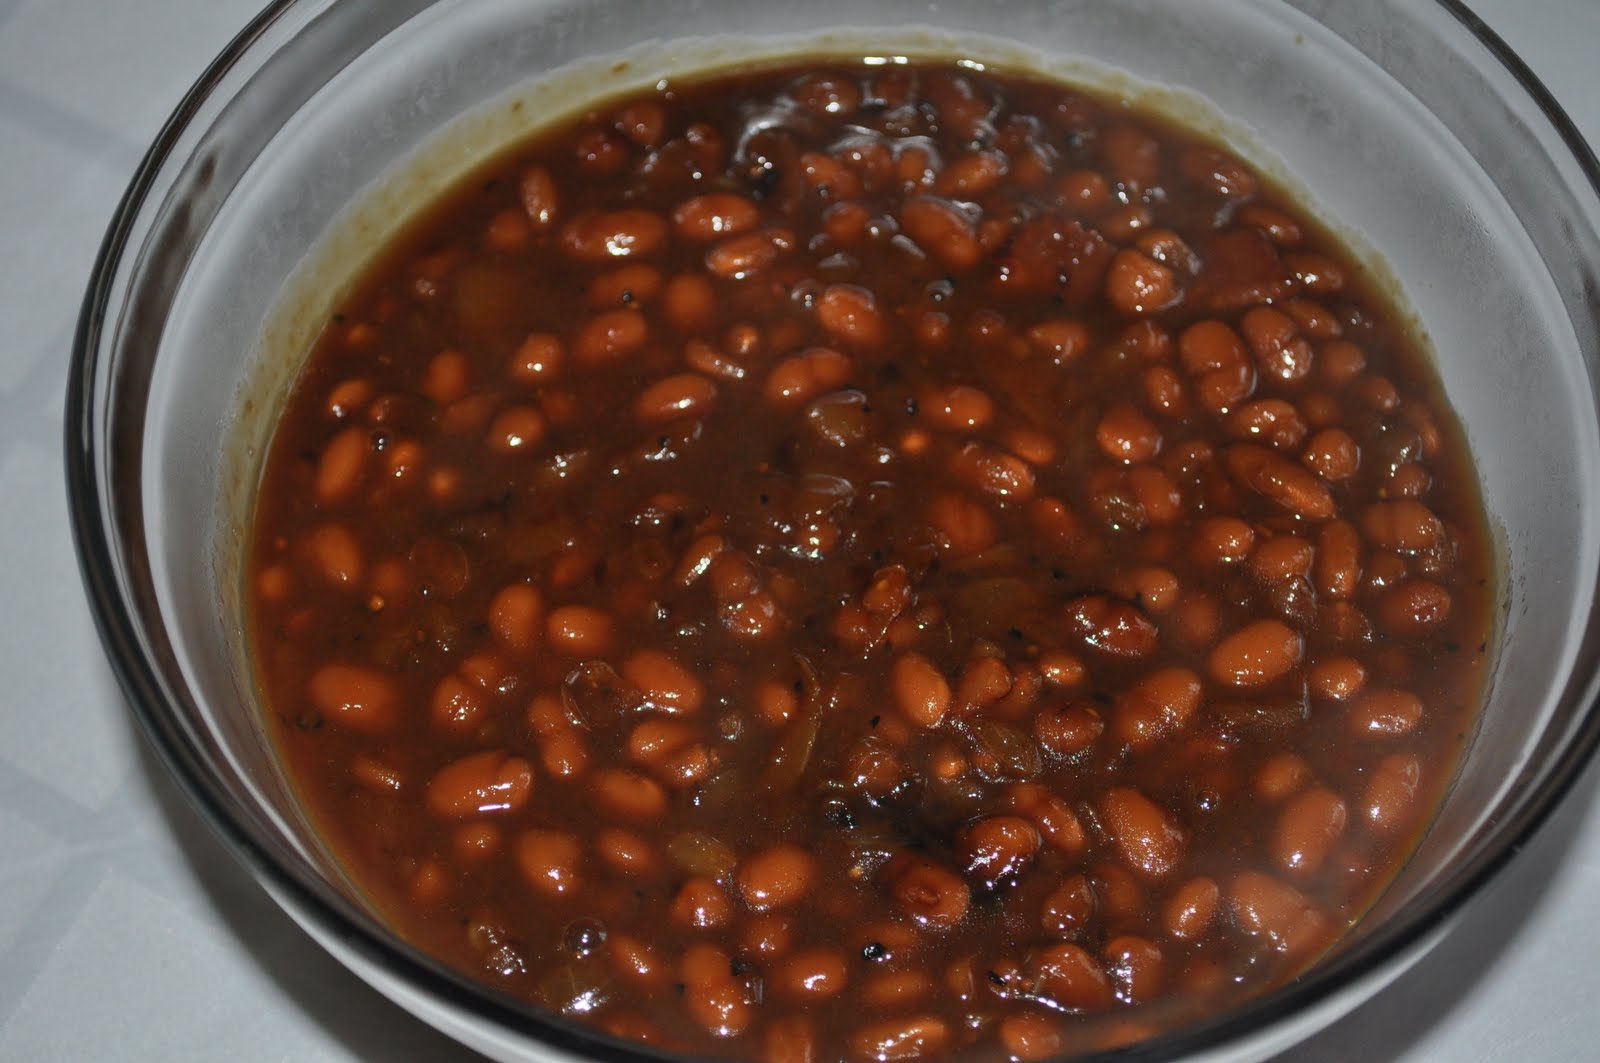 cheater baked beans 1 28 oz can baked beans i